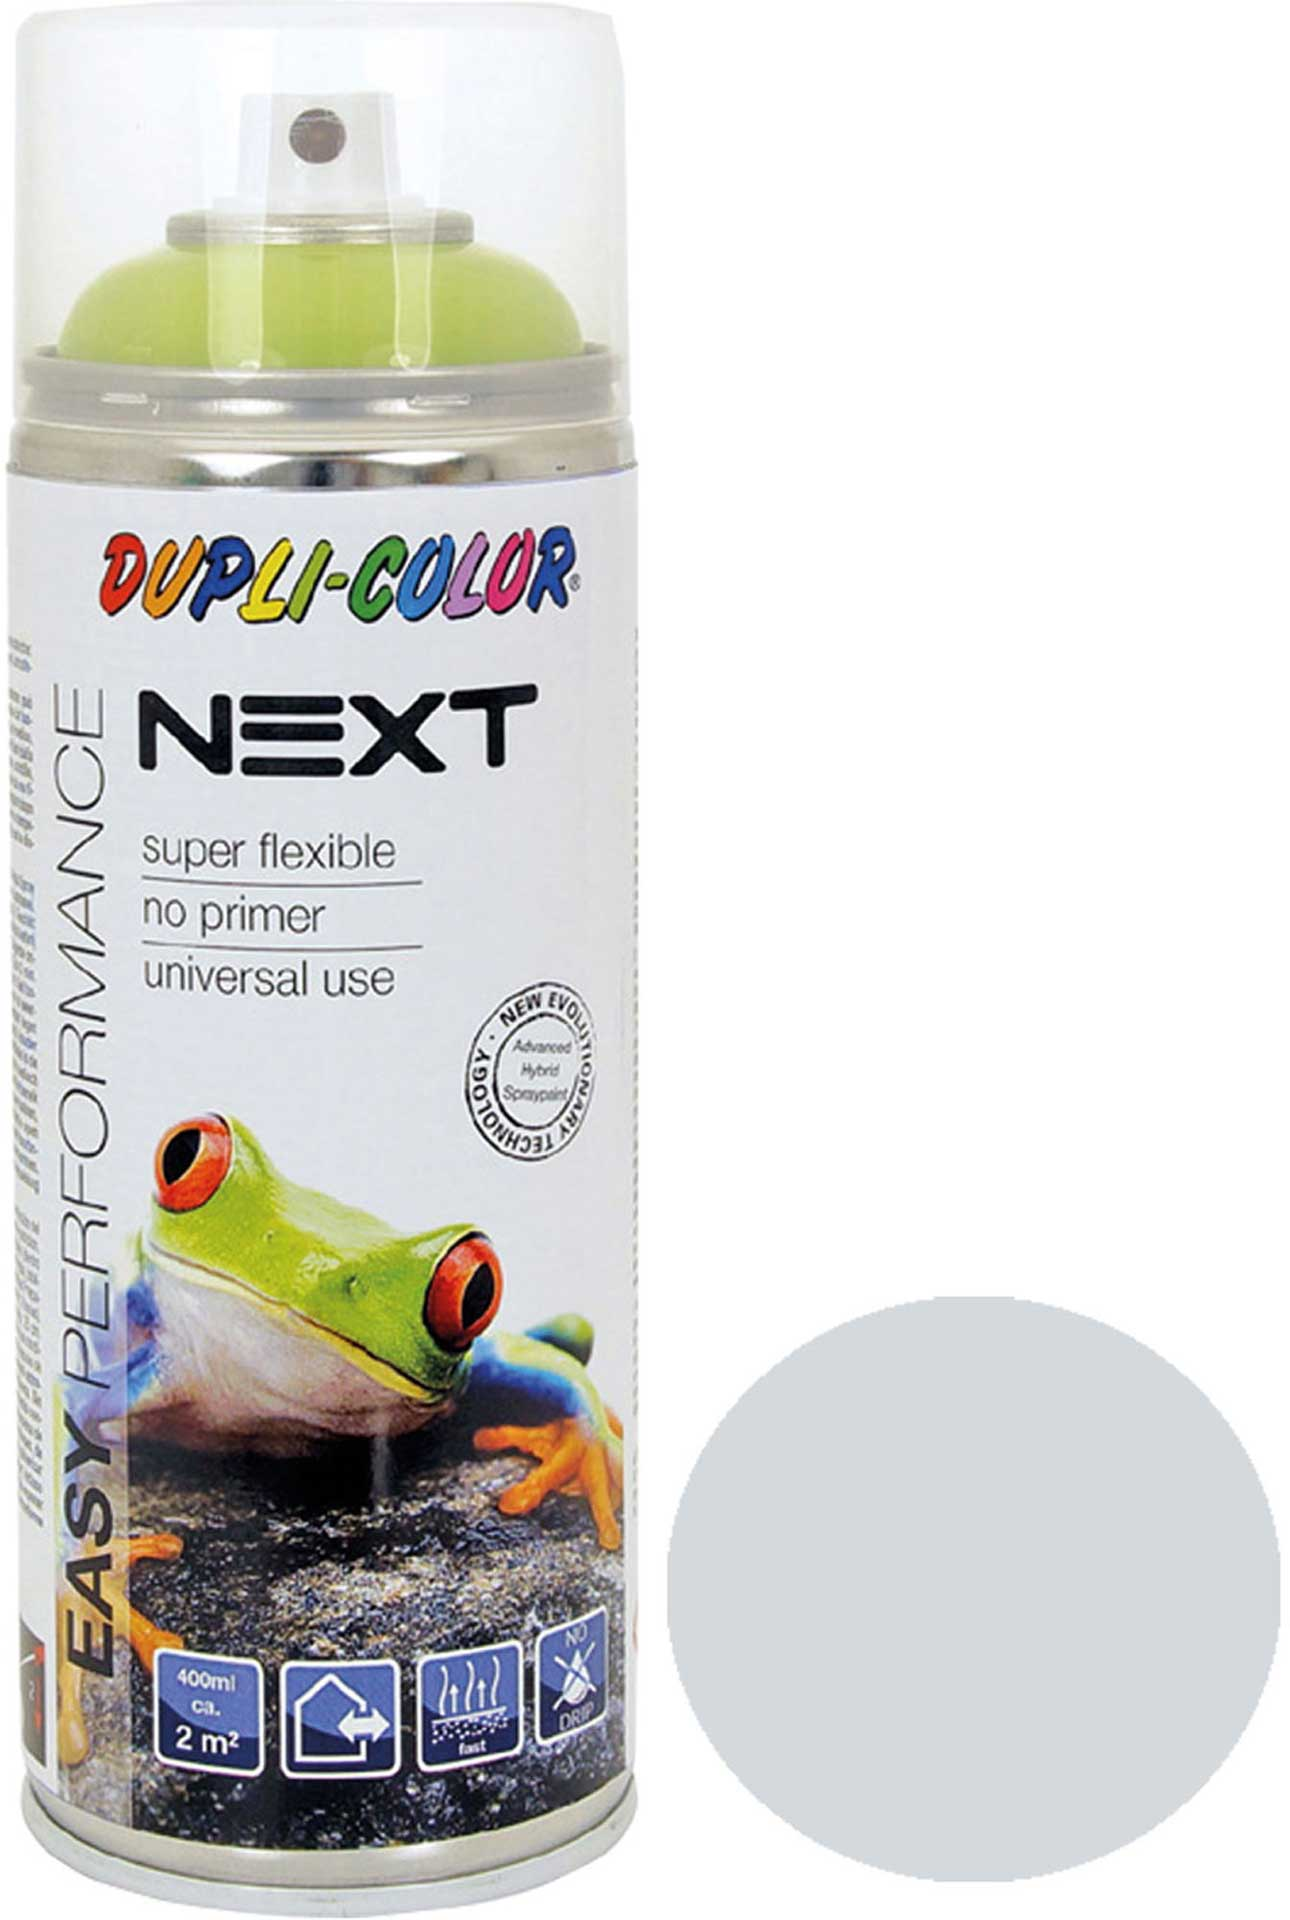 DUPLI-COLOR NEXT RAL 7035 LIGHT GREY 400ML SPRAY PAINT